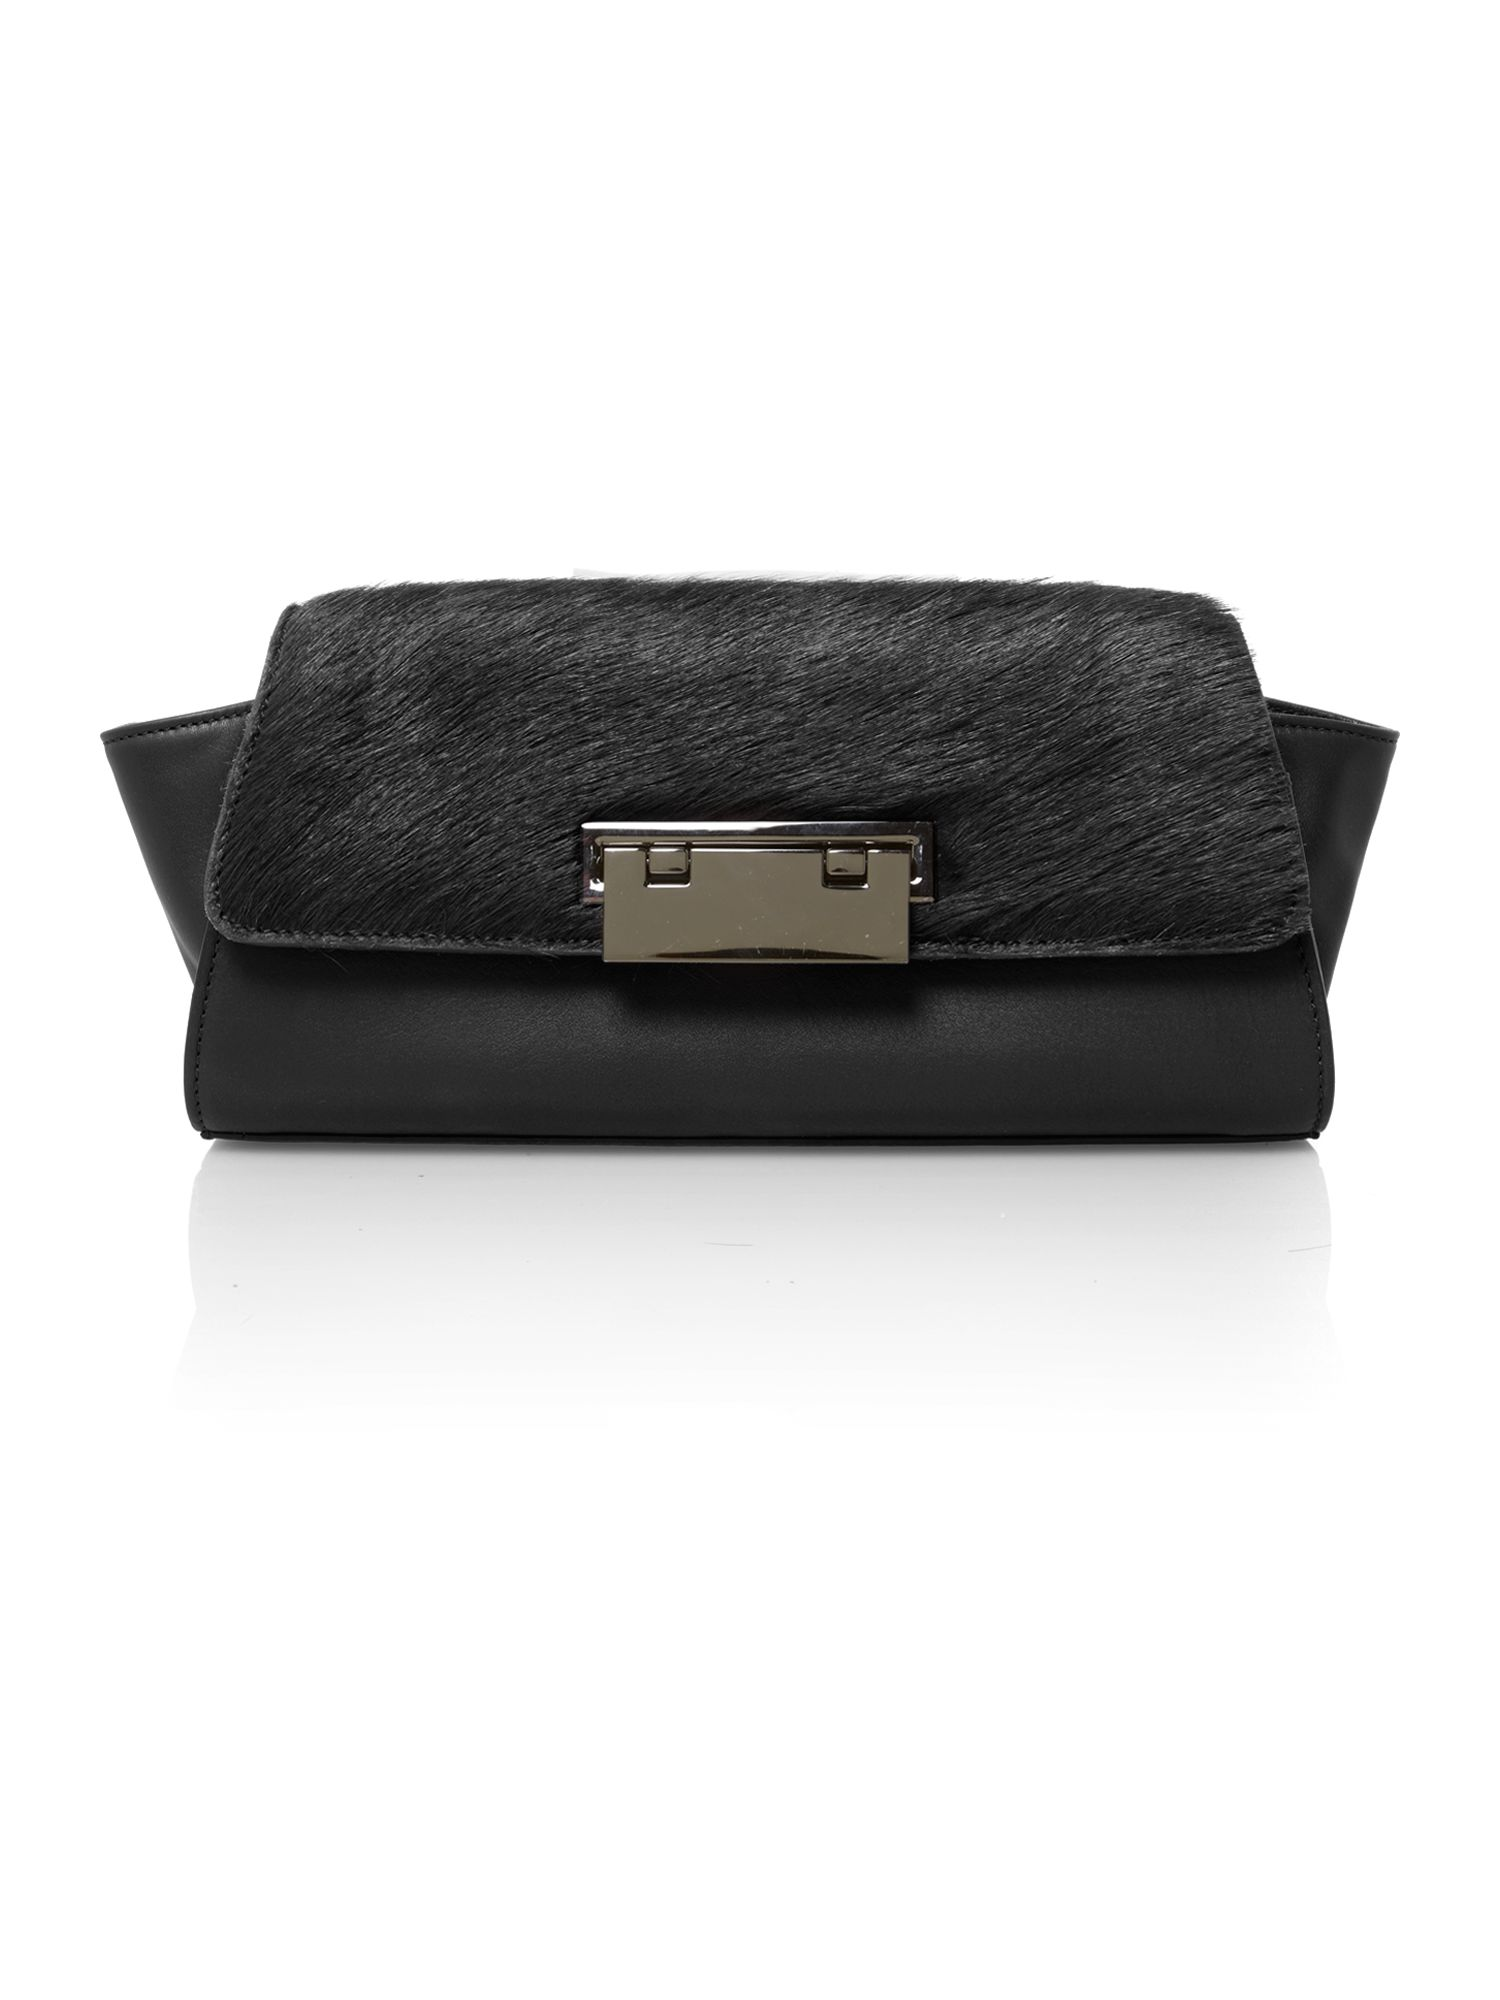 Colorado clutch bag